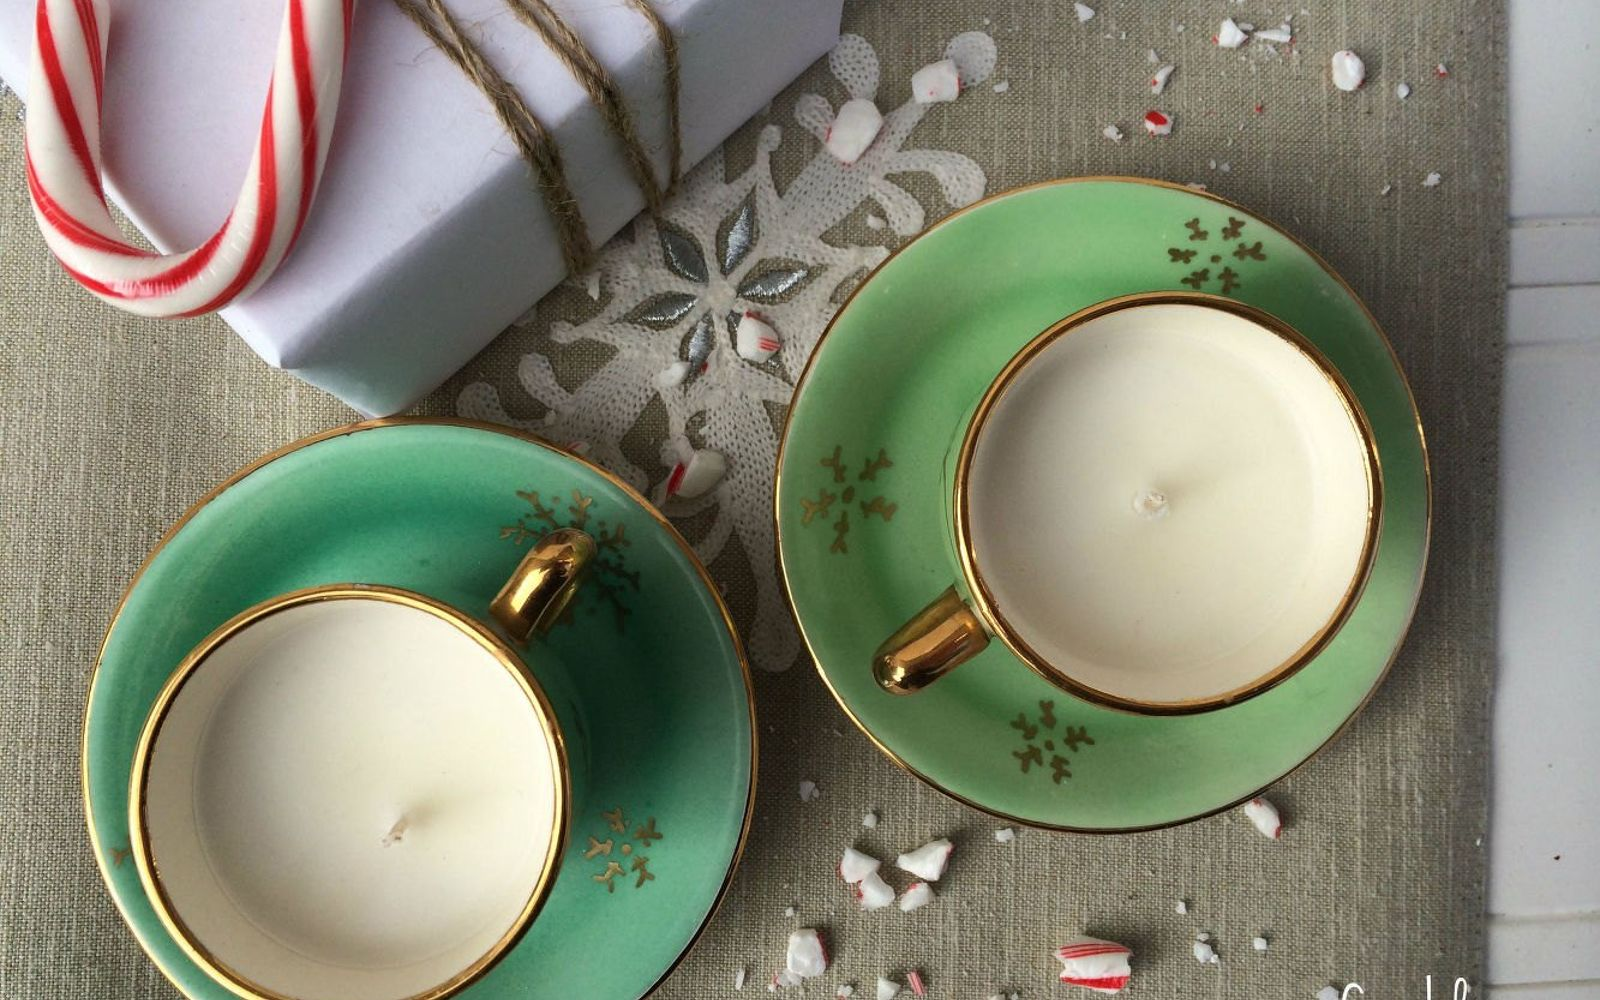 s don t ditch your broken teacups til you see what people do with them, repurposing upcycling, Fill teacups with homemade candles